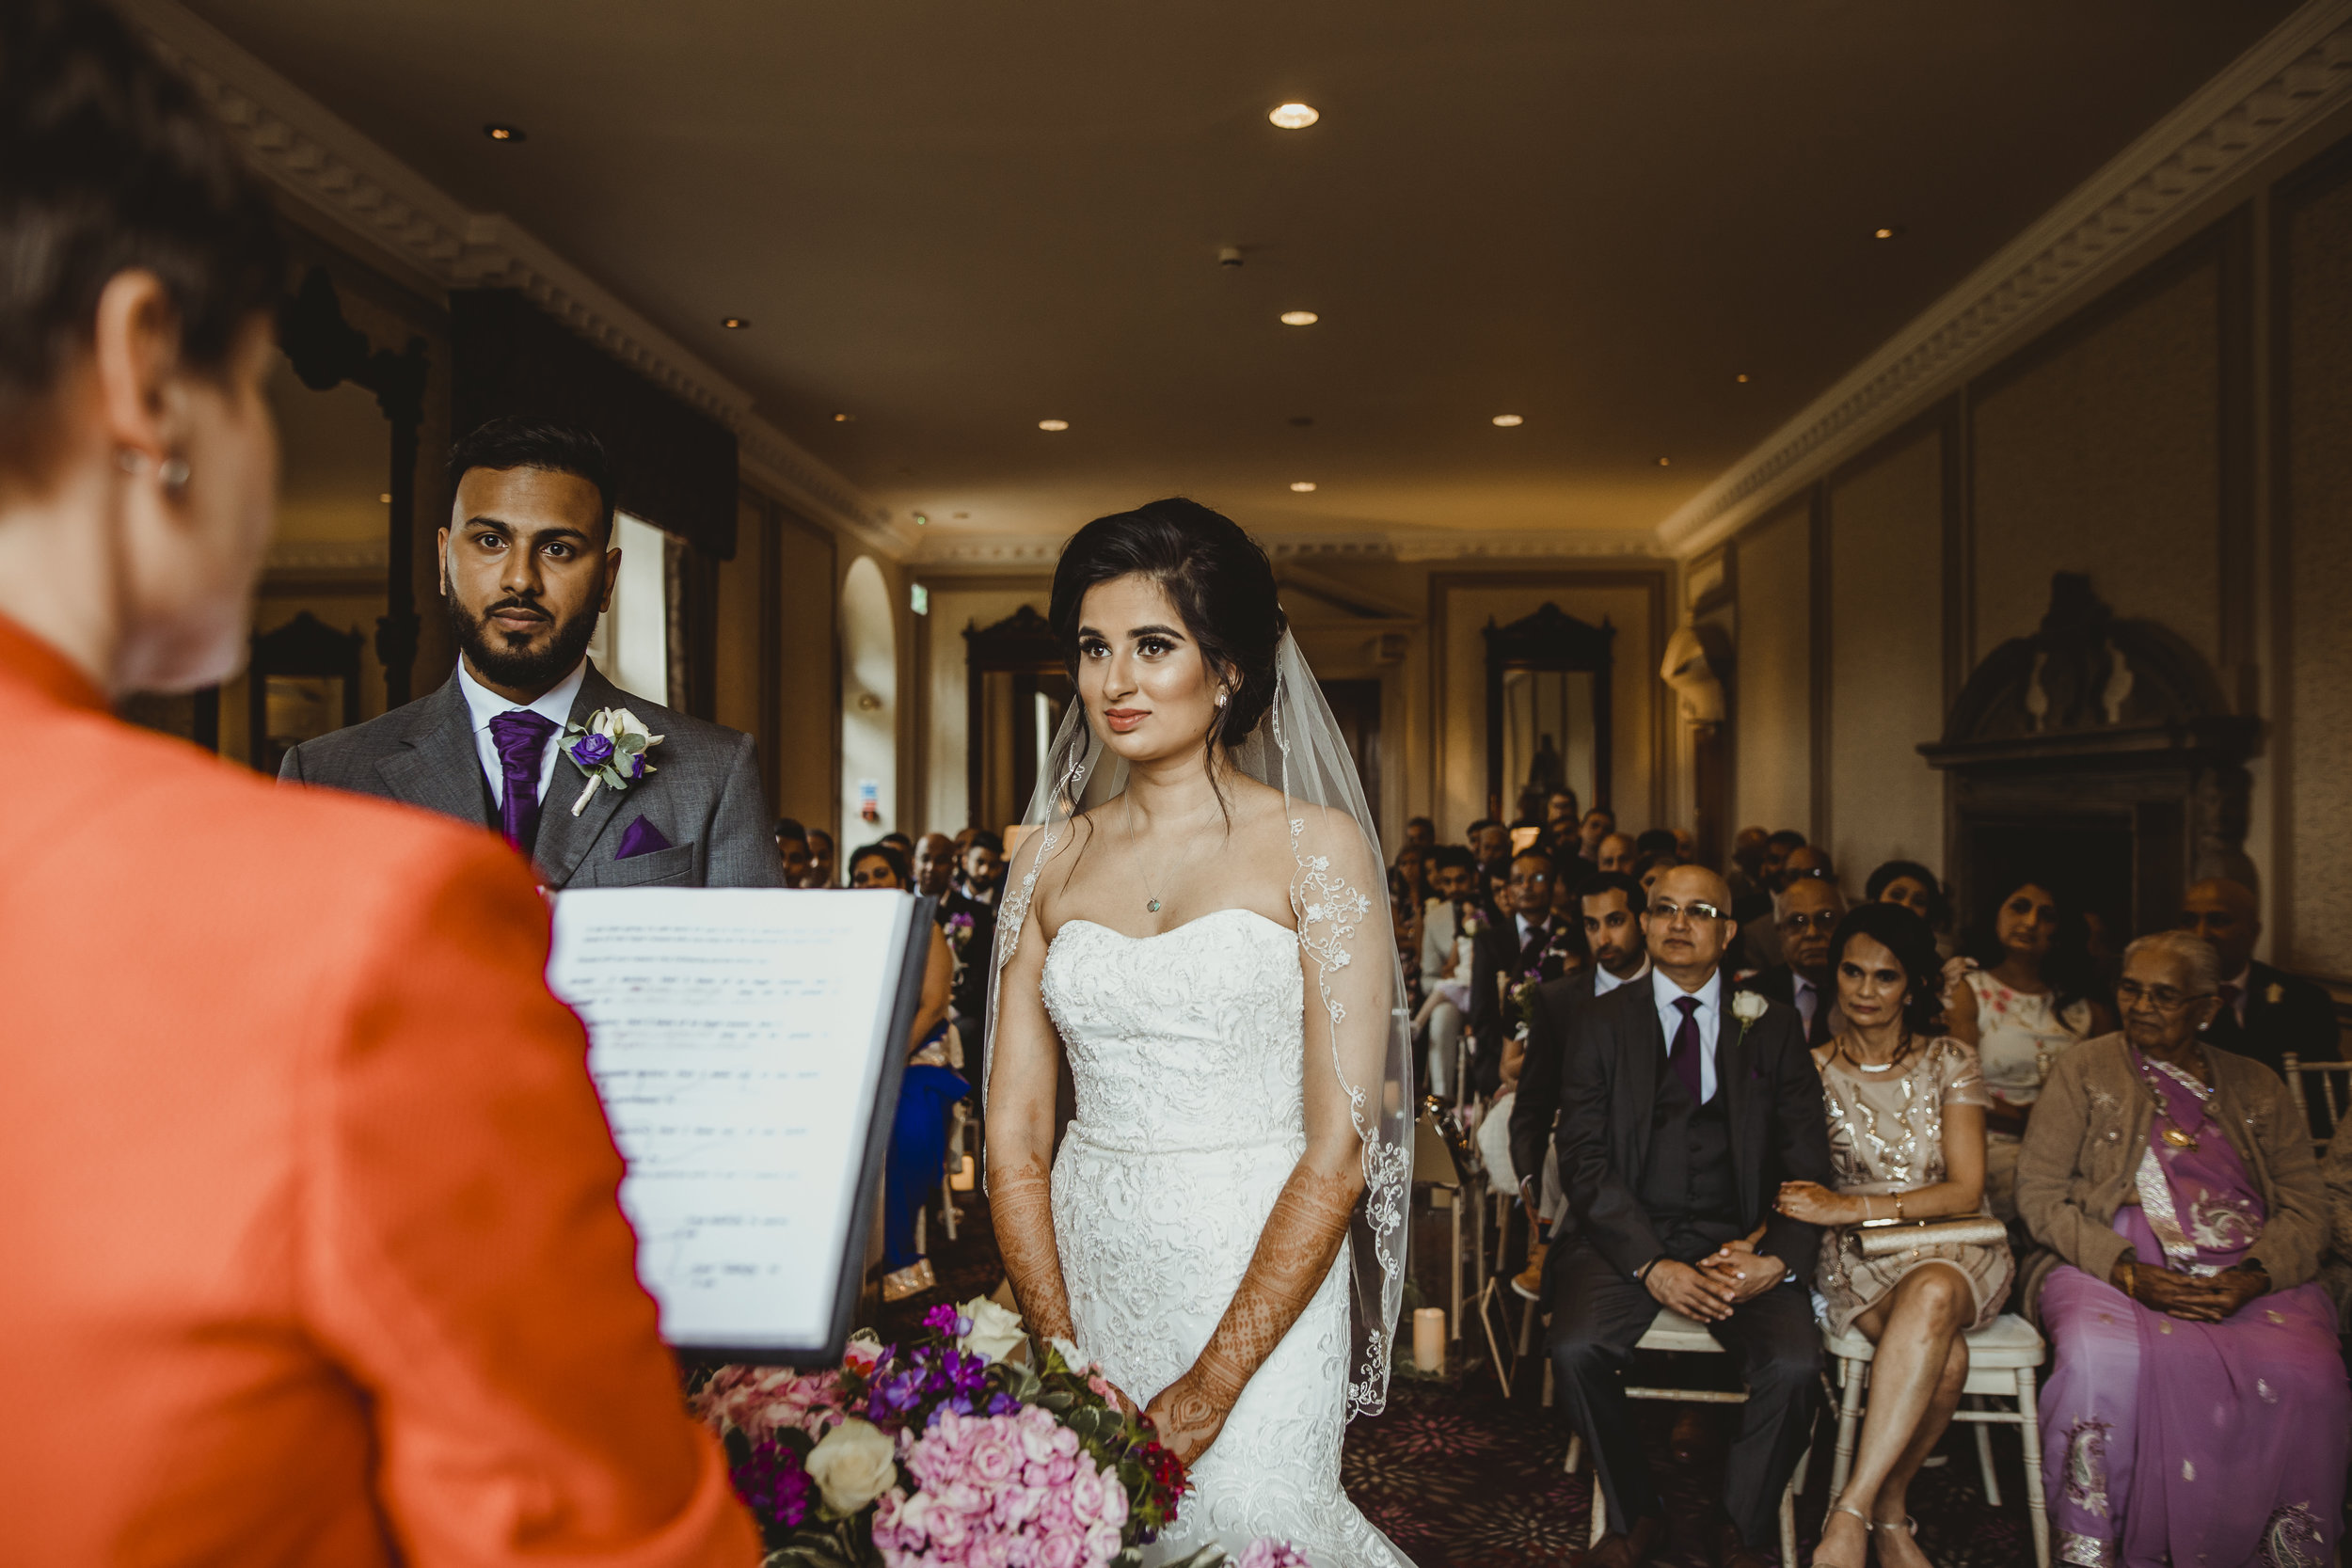 N&J_MILTON_KEYNES_WEDDING_LONDON_PHOTOGRAPHER_ASIAN_WEDDING-390.JPG